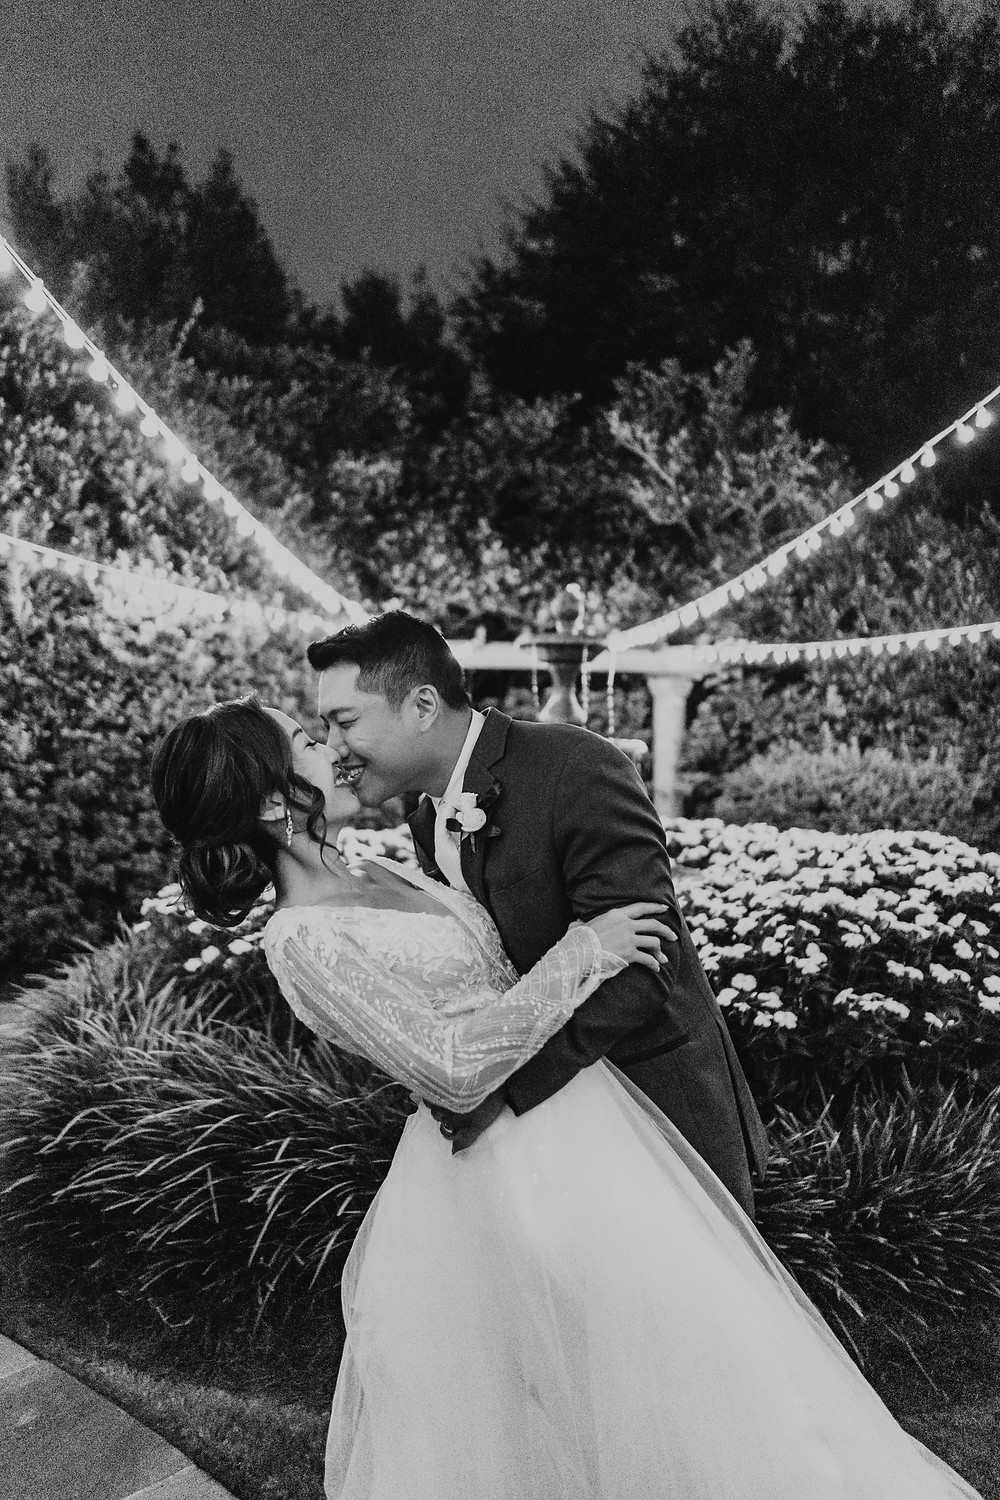 Black and white photo of asian bride and groom dancing in a garden at night